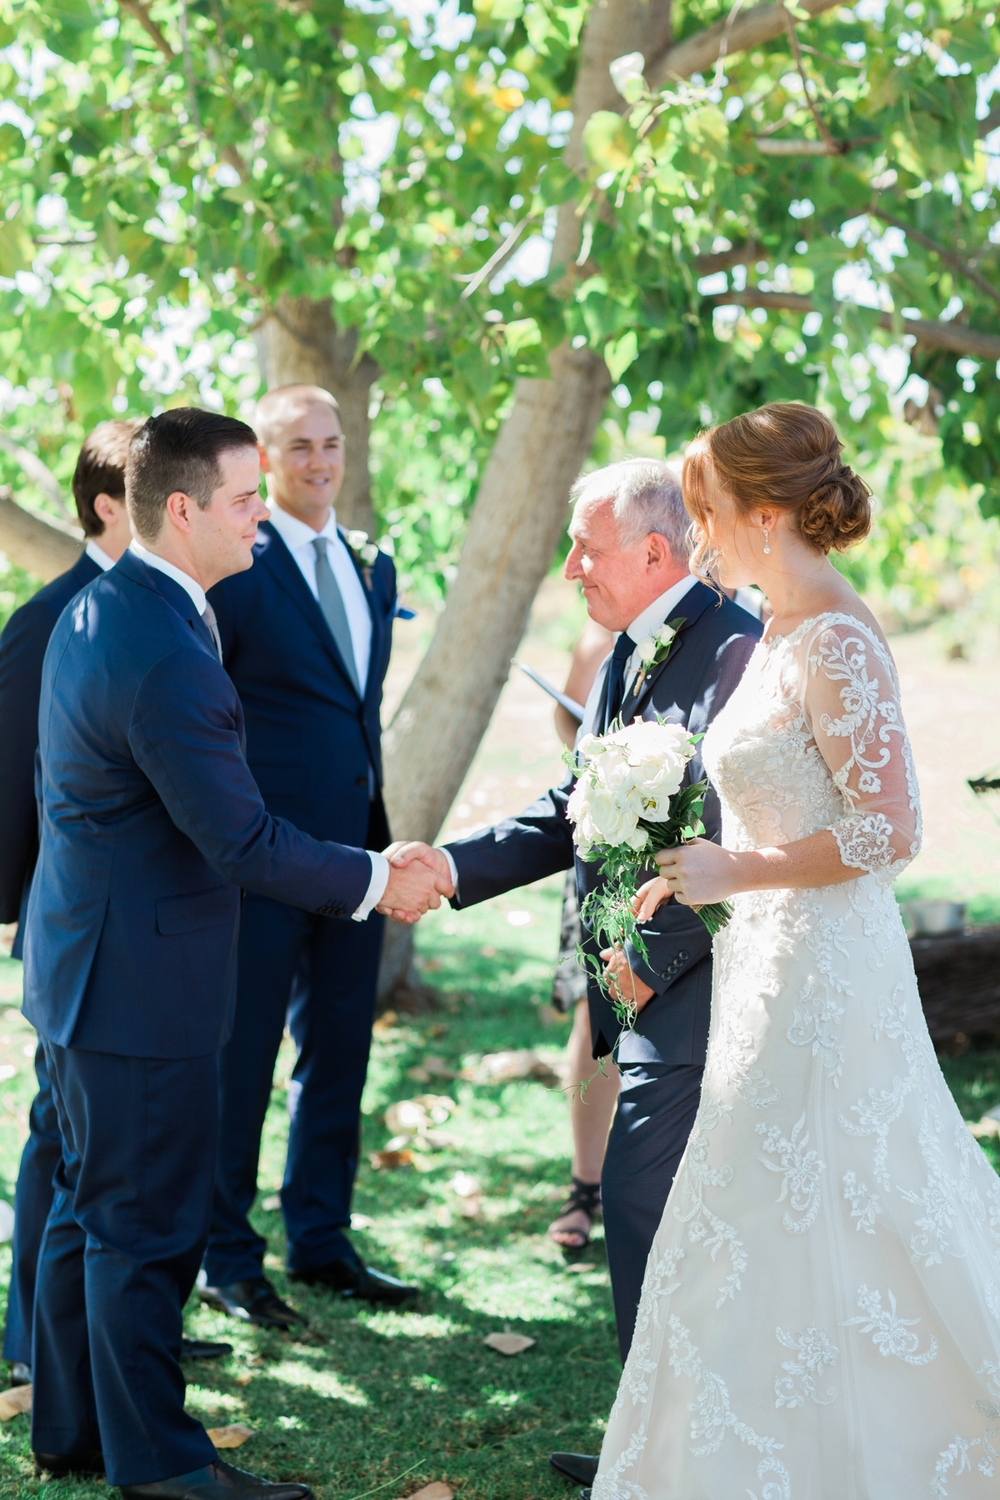 The Vine Grove Mudgee Wedding, Photography by Mr Edwards_1756.jpg